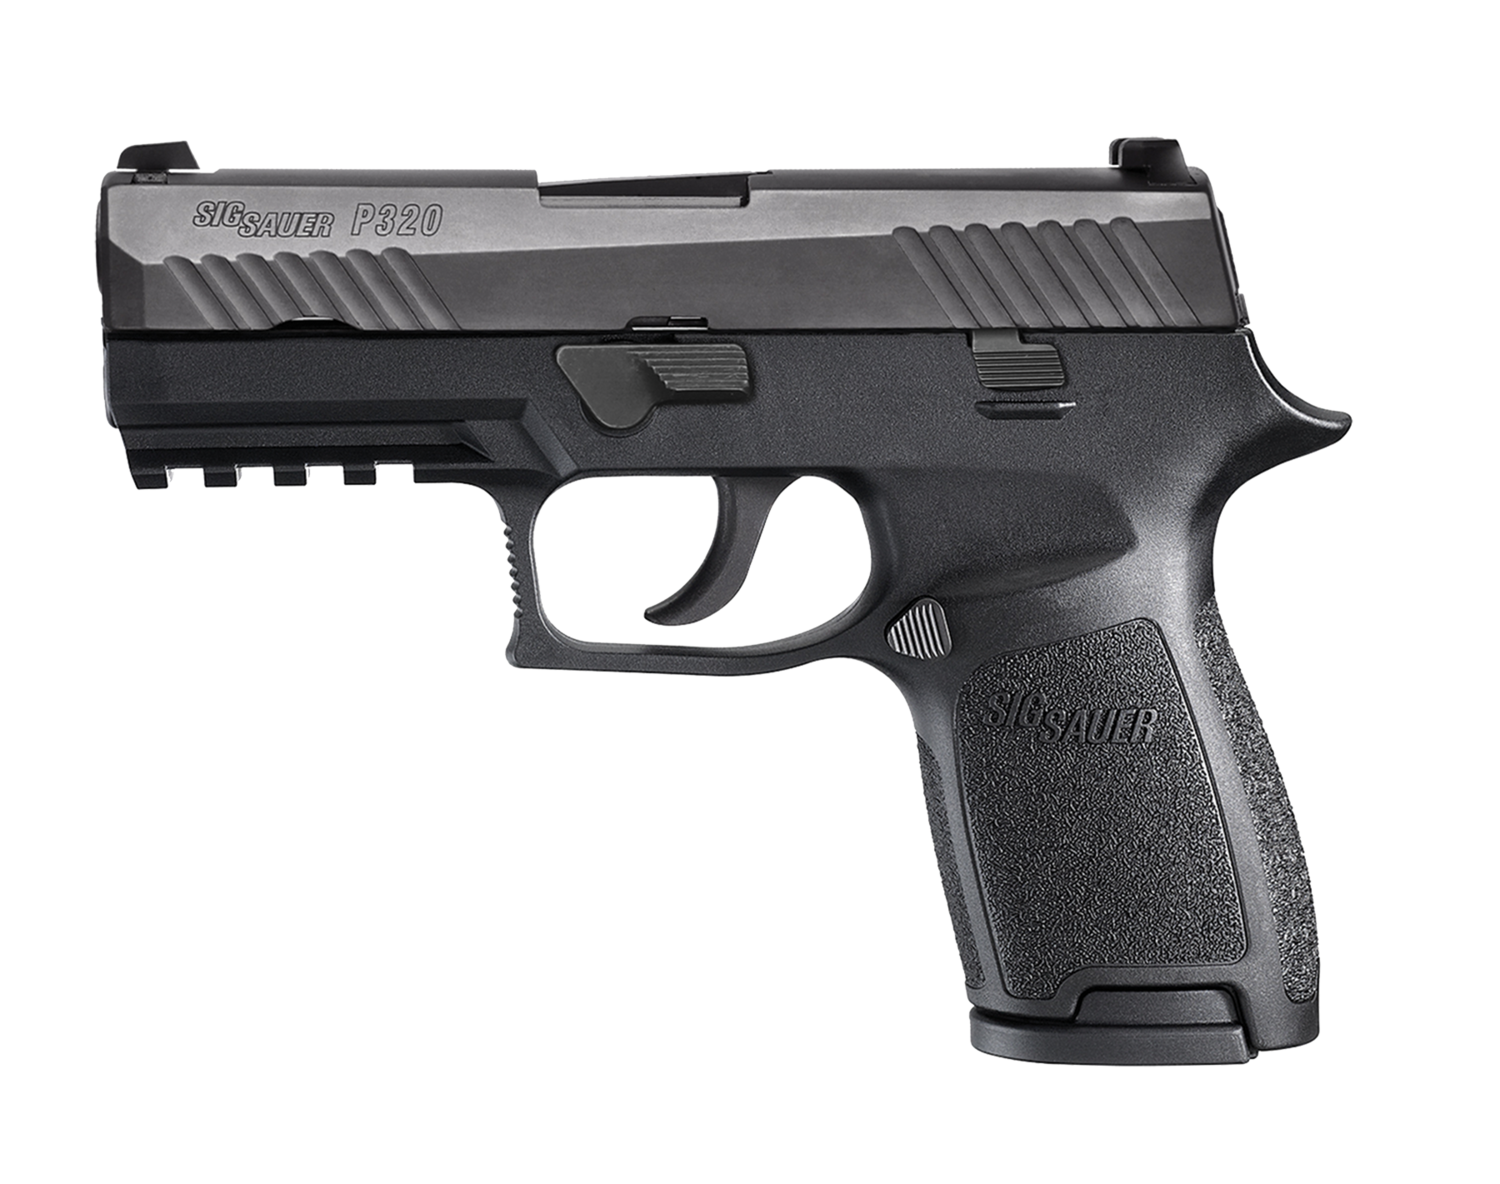 """80% Sig Sauer - P320 Full Size Double 9mm Luger 4.7"""" 10+1 - Black Polymer Grip - Black Nitron Stainless Steel"""